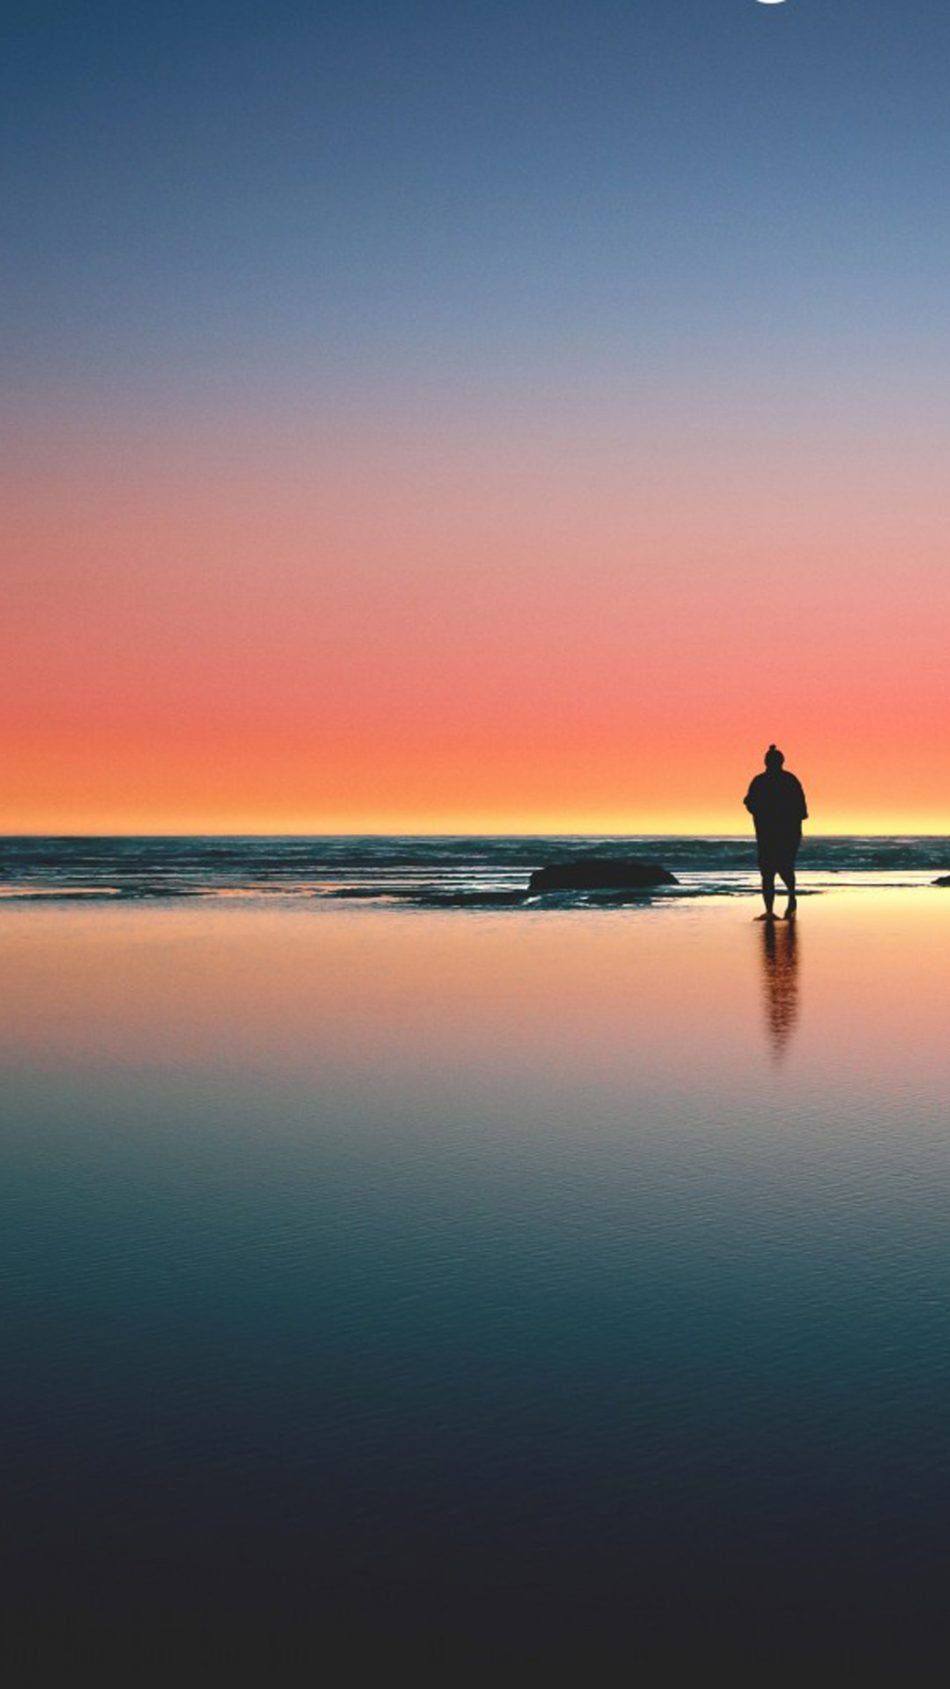 Download Loneliness Sea Beach Sunset Free Pure 4k Ultra Hd Mobile